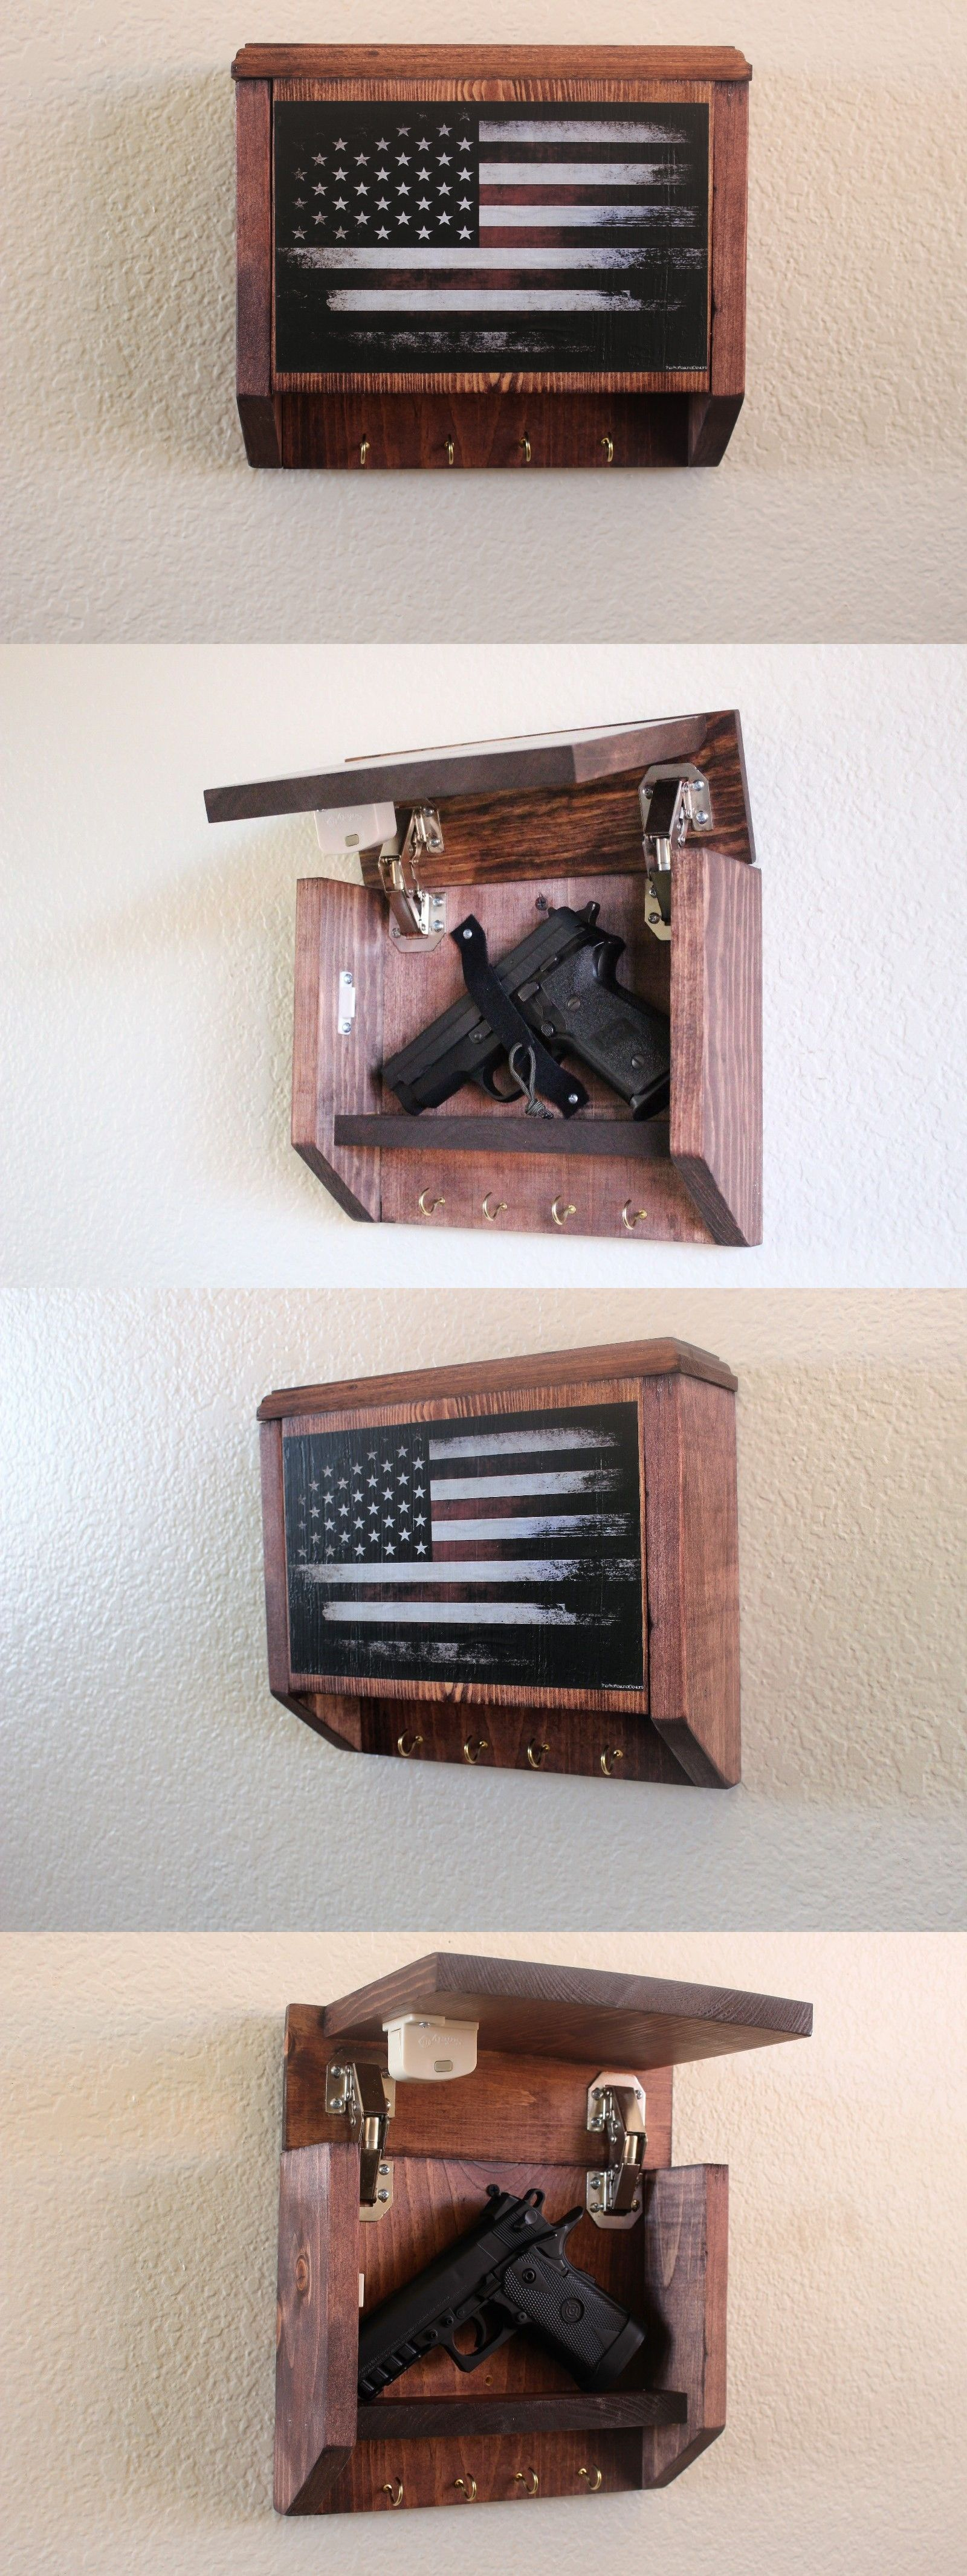 Cabinets And Safes 177877 Hidden Gun Storage Key Rack